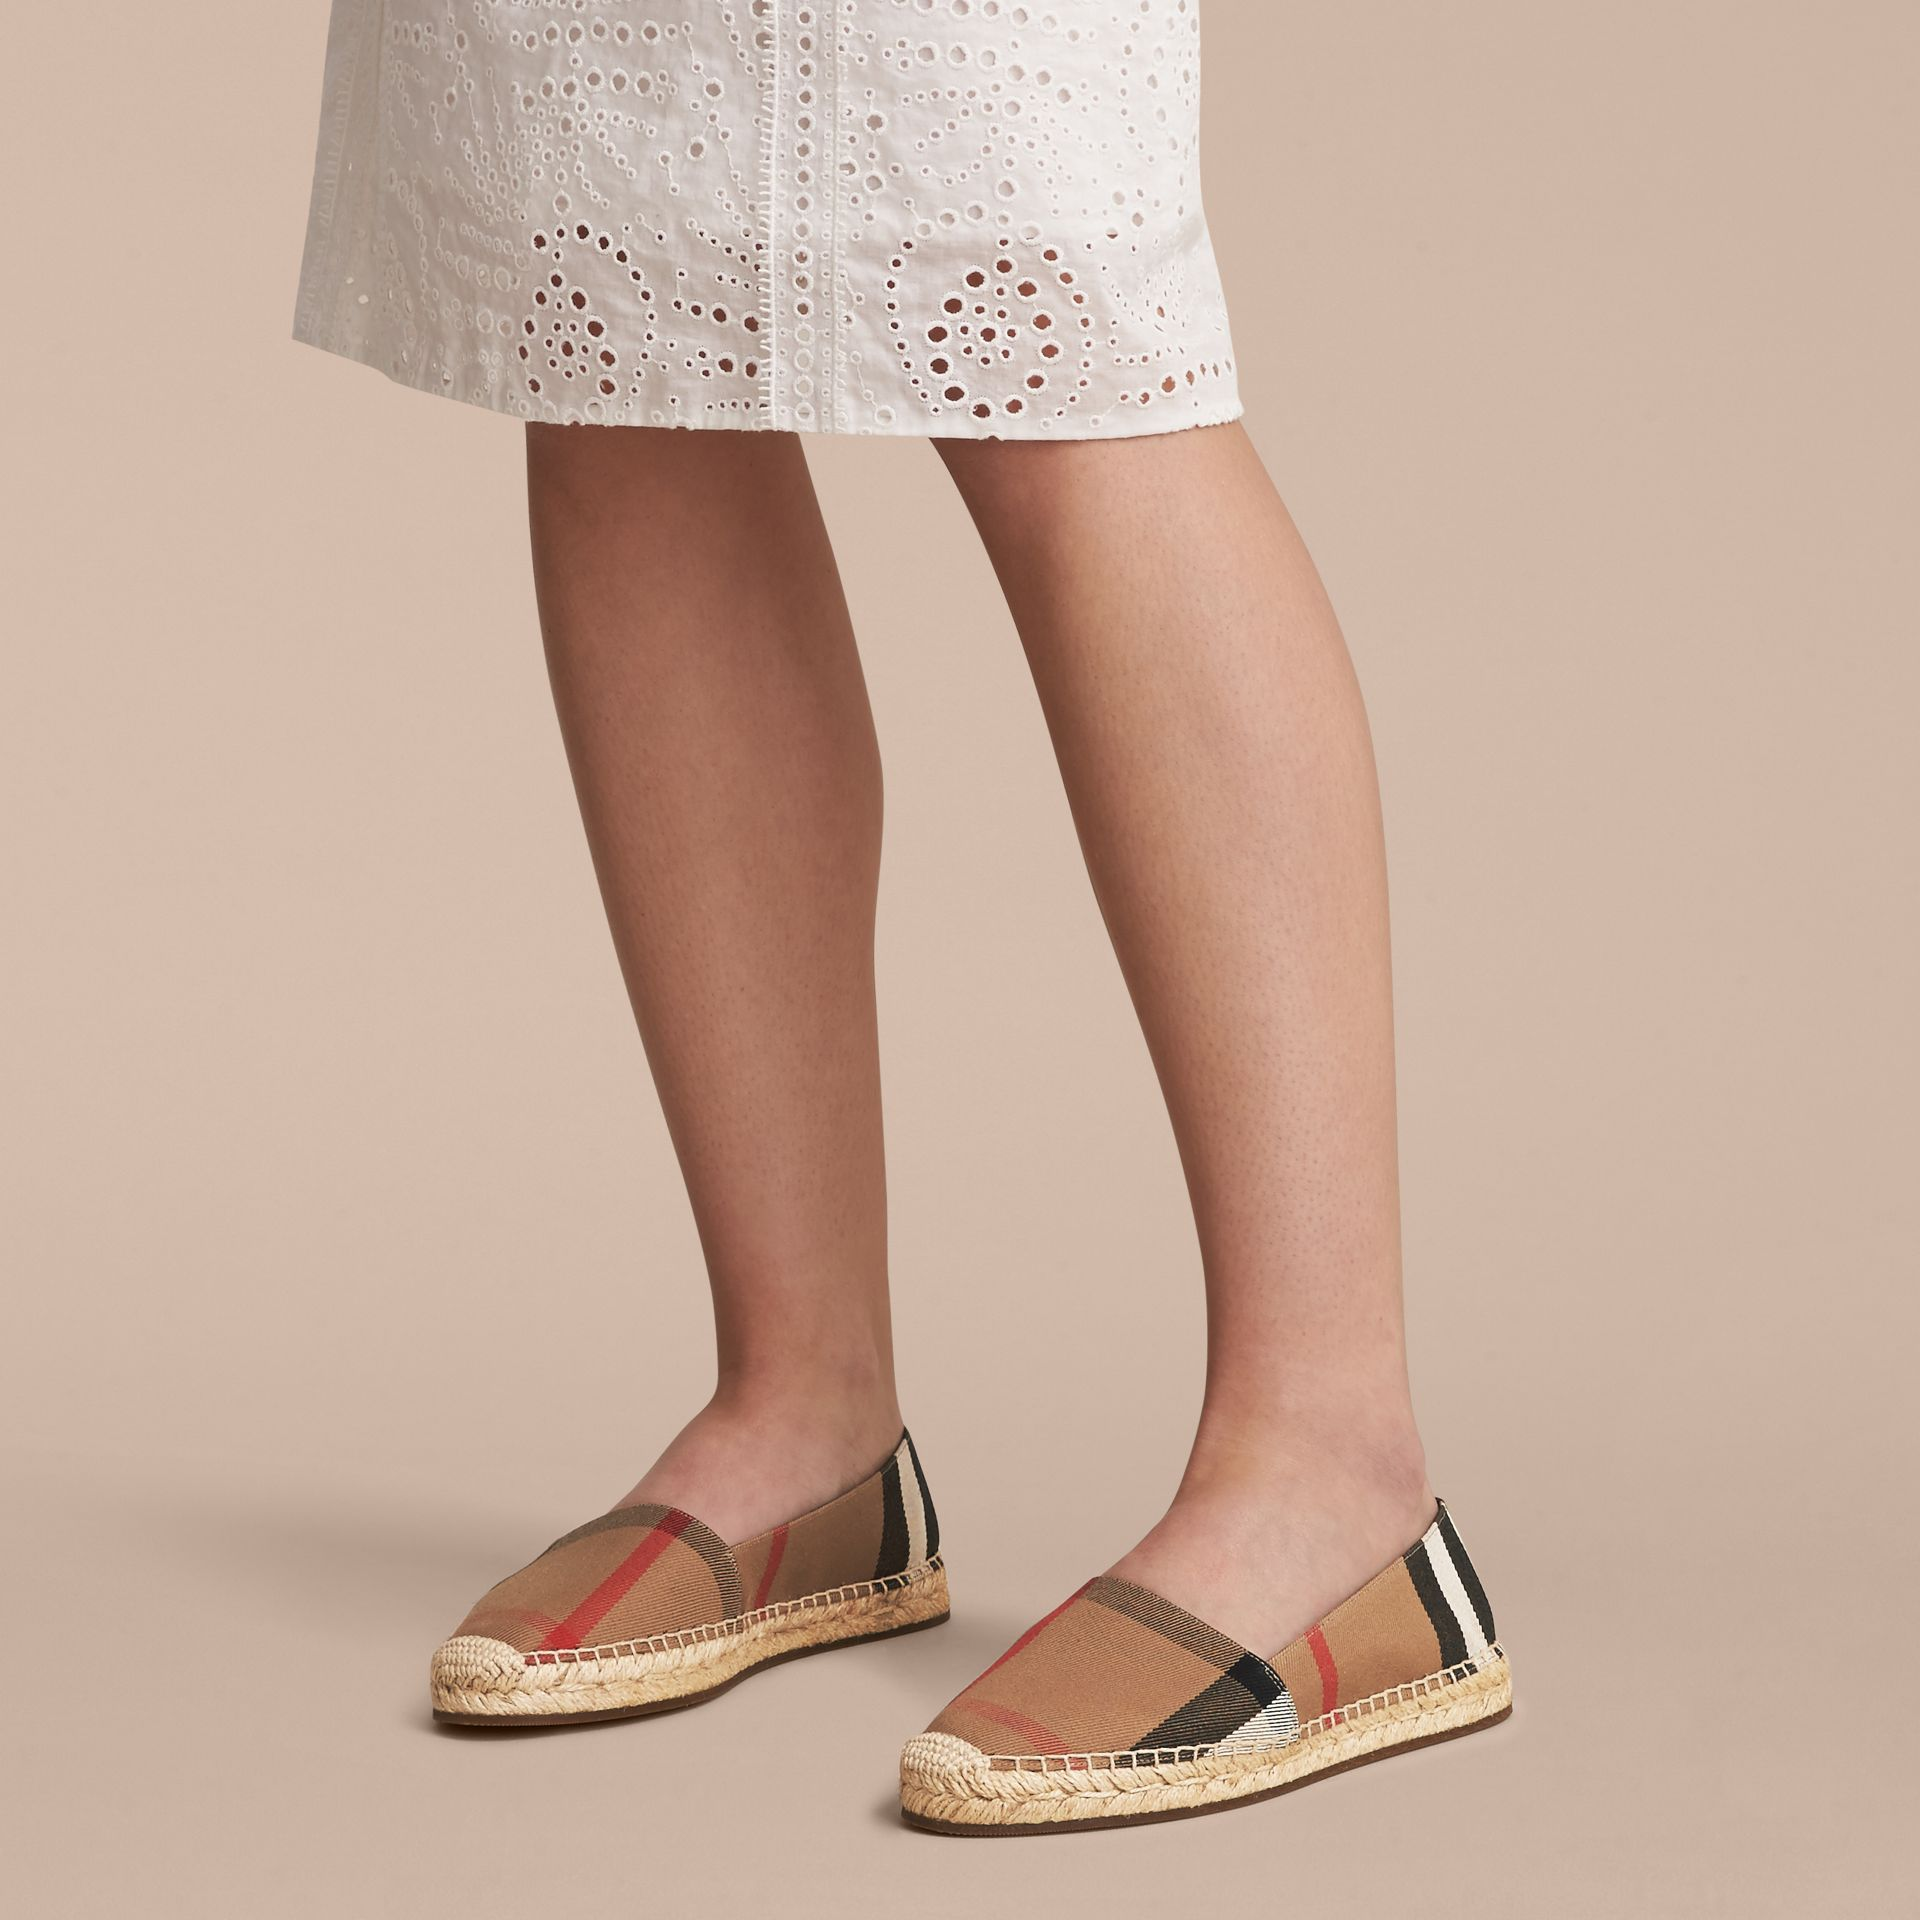 Leather Trim Canvas Check Espadrilles in Classic - Women | Burberry Singapore - gallery image 2